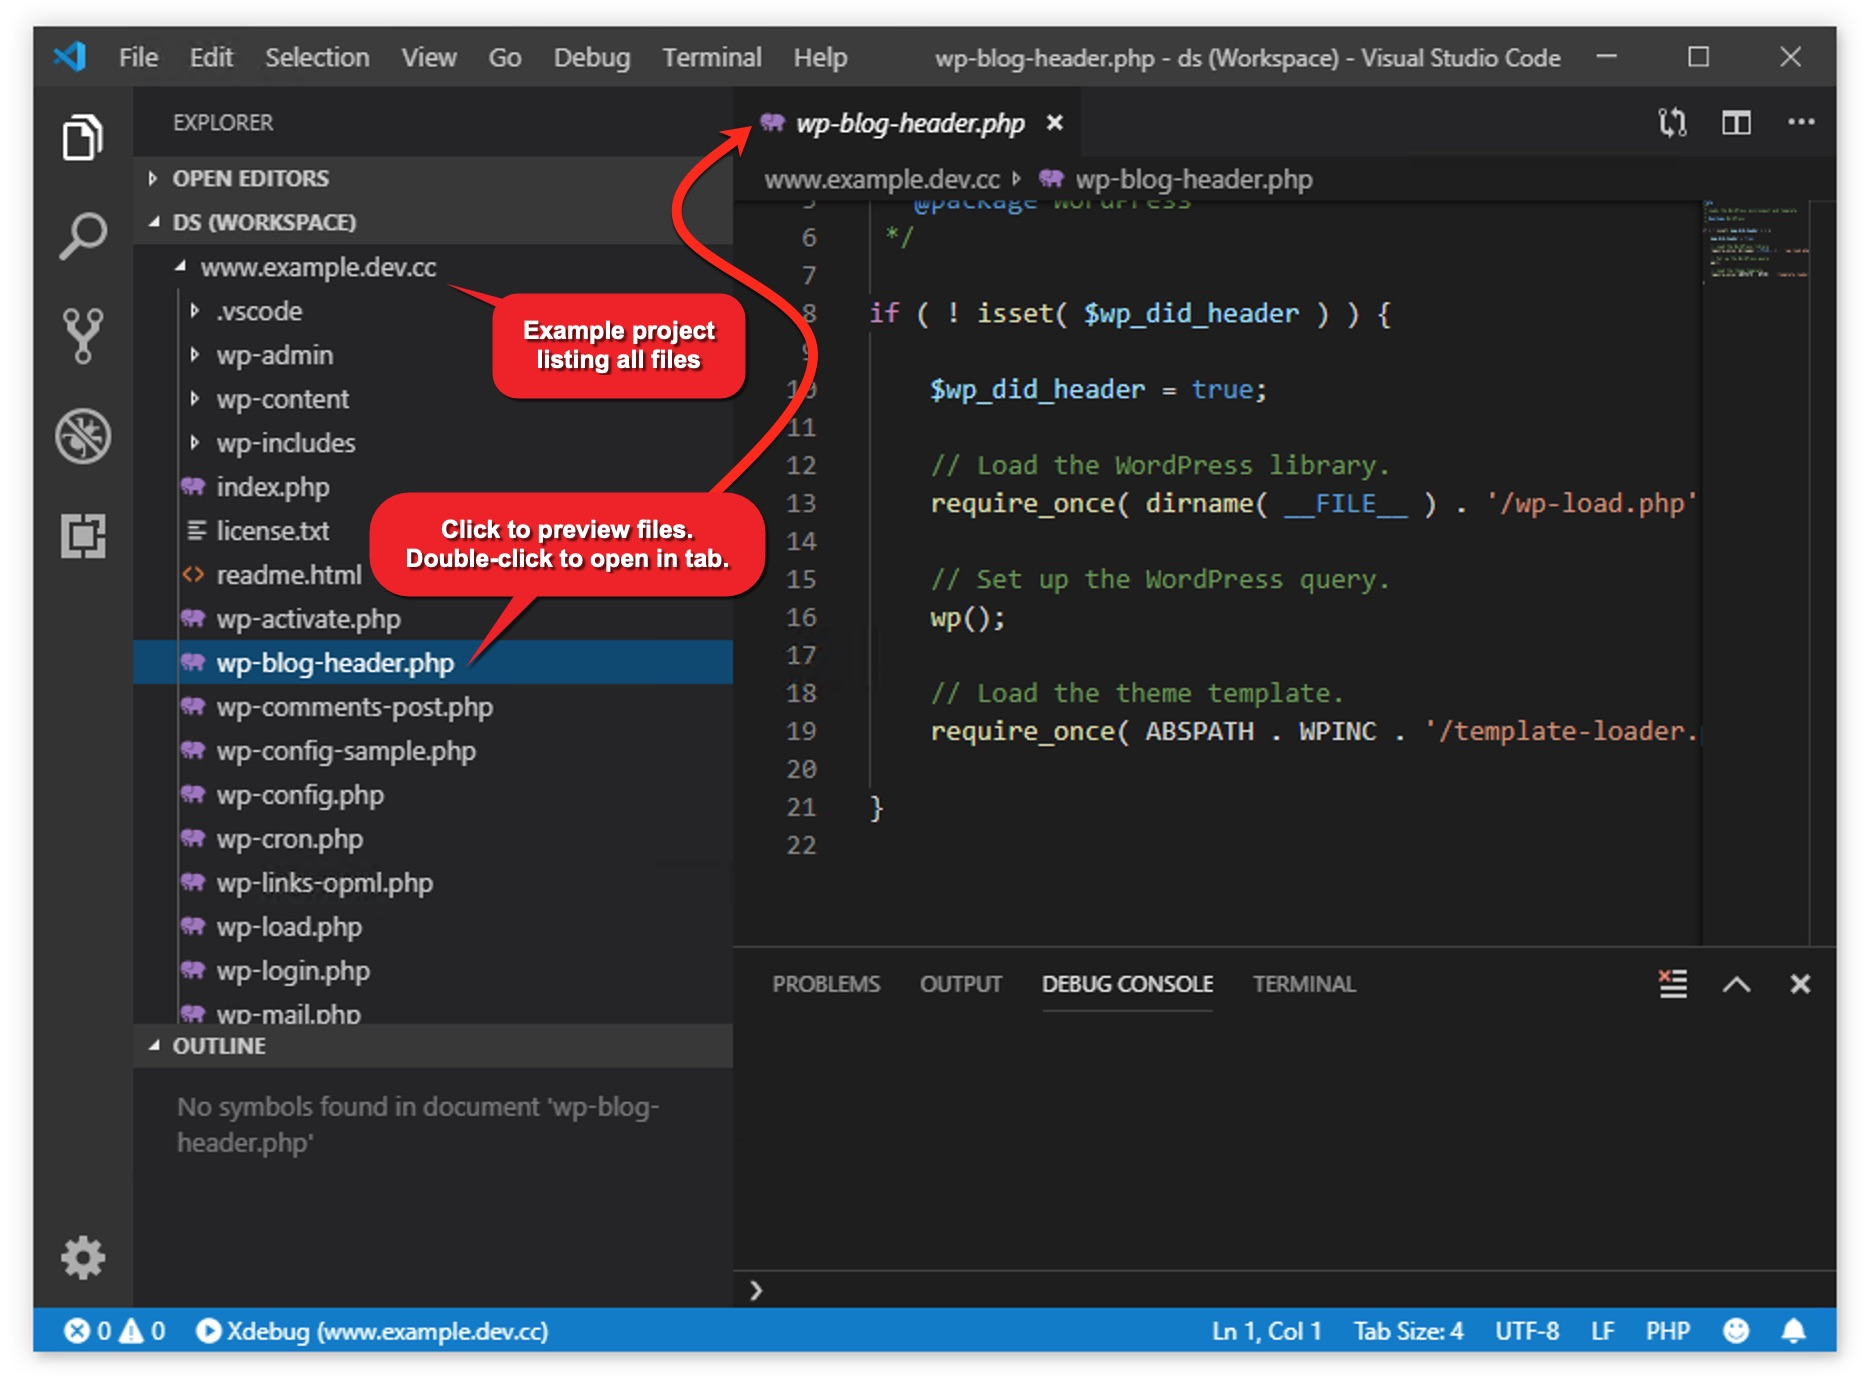 Visual Studio Code's text editing area